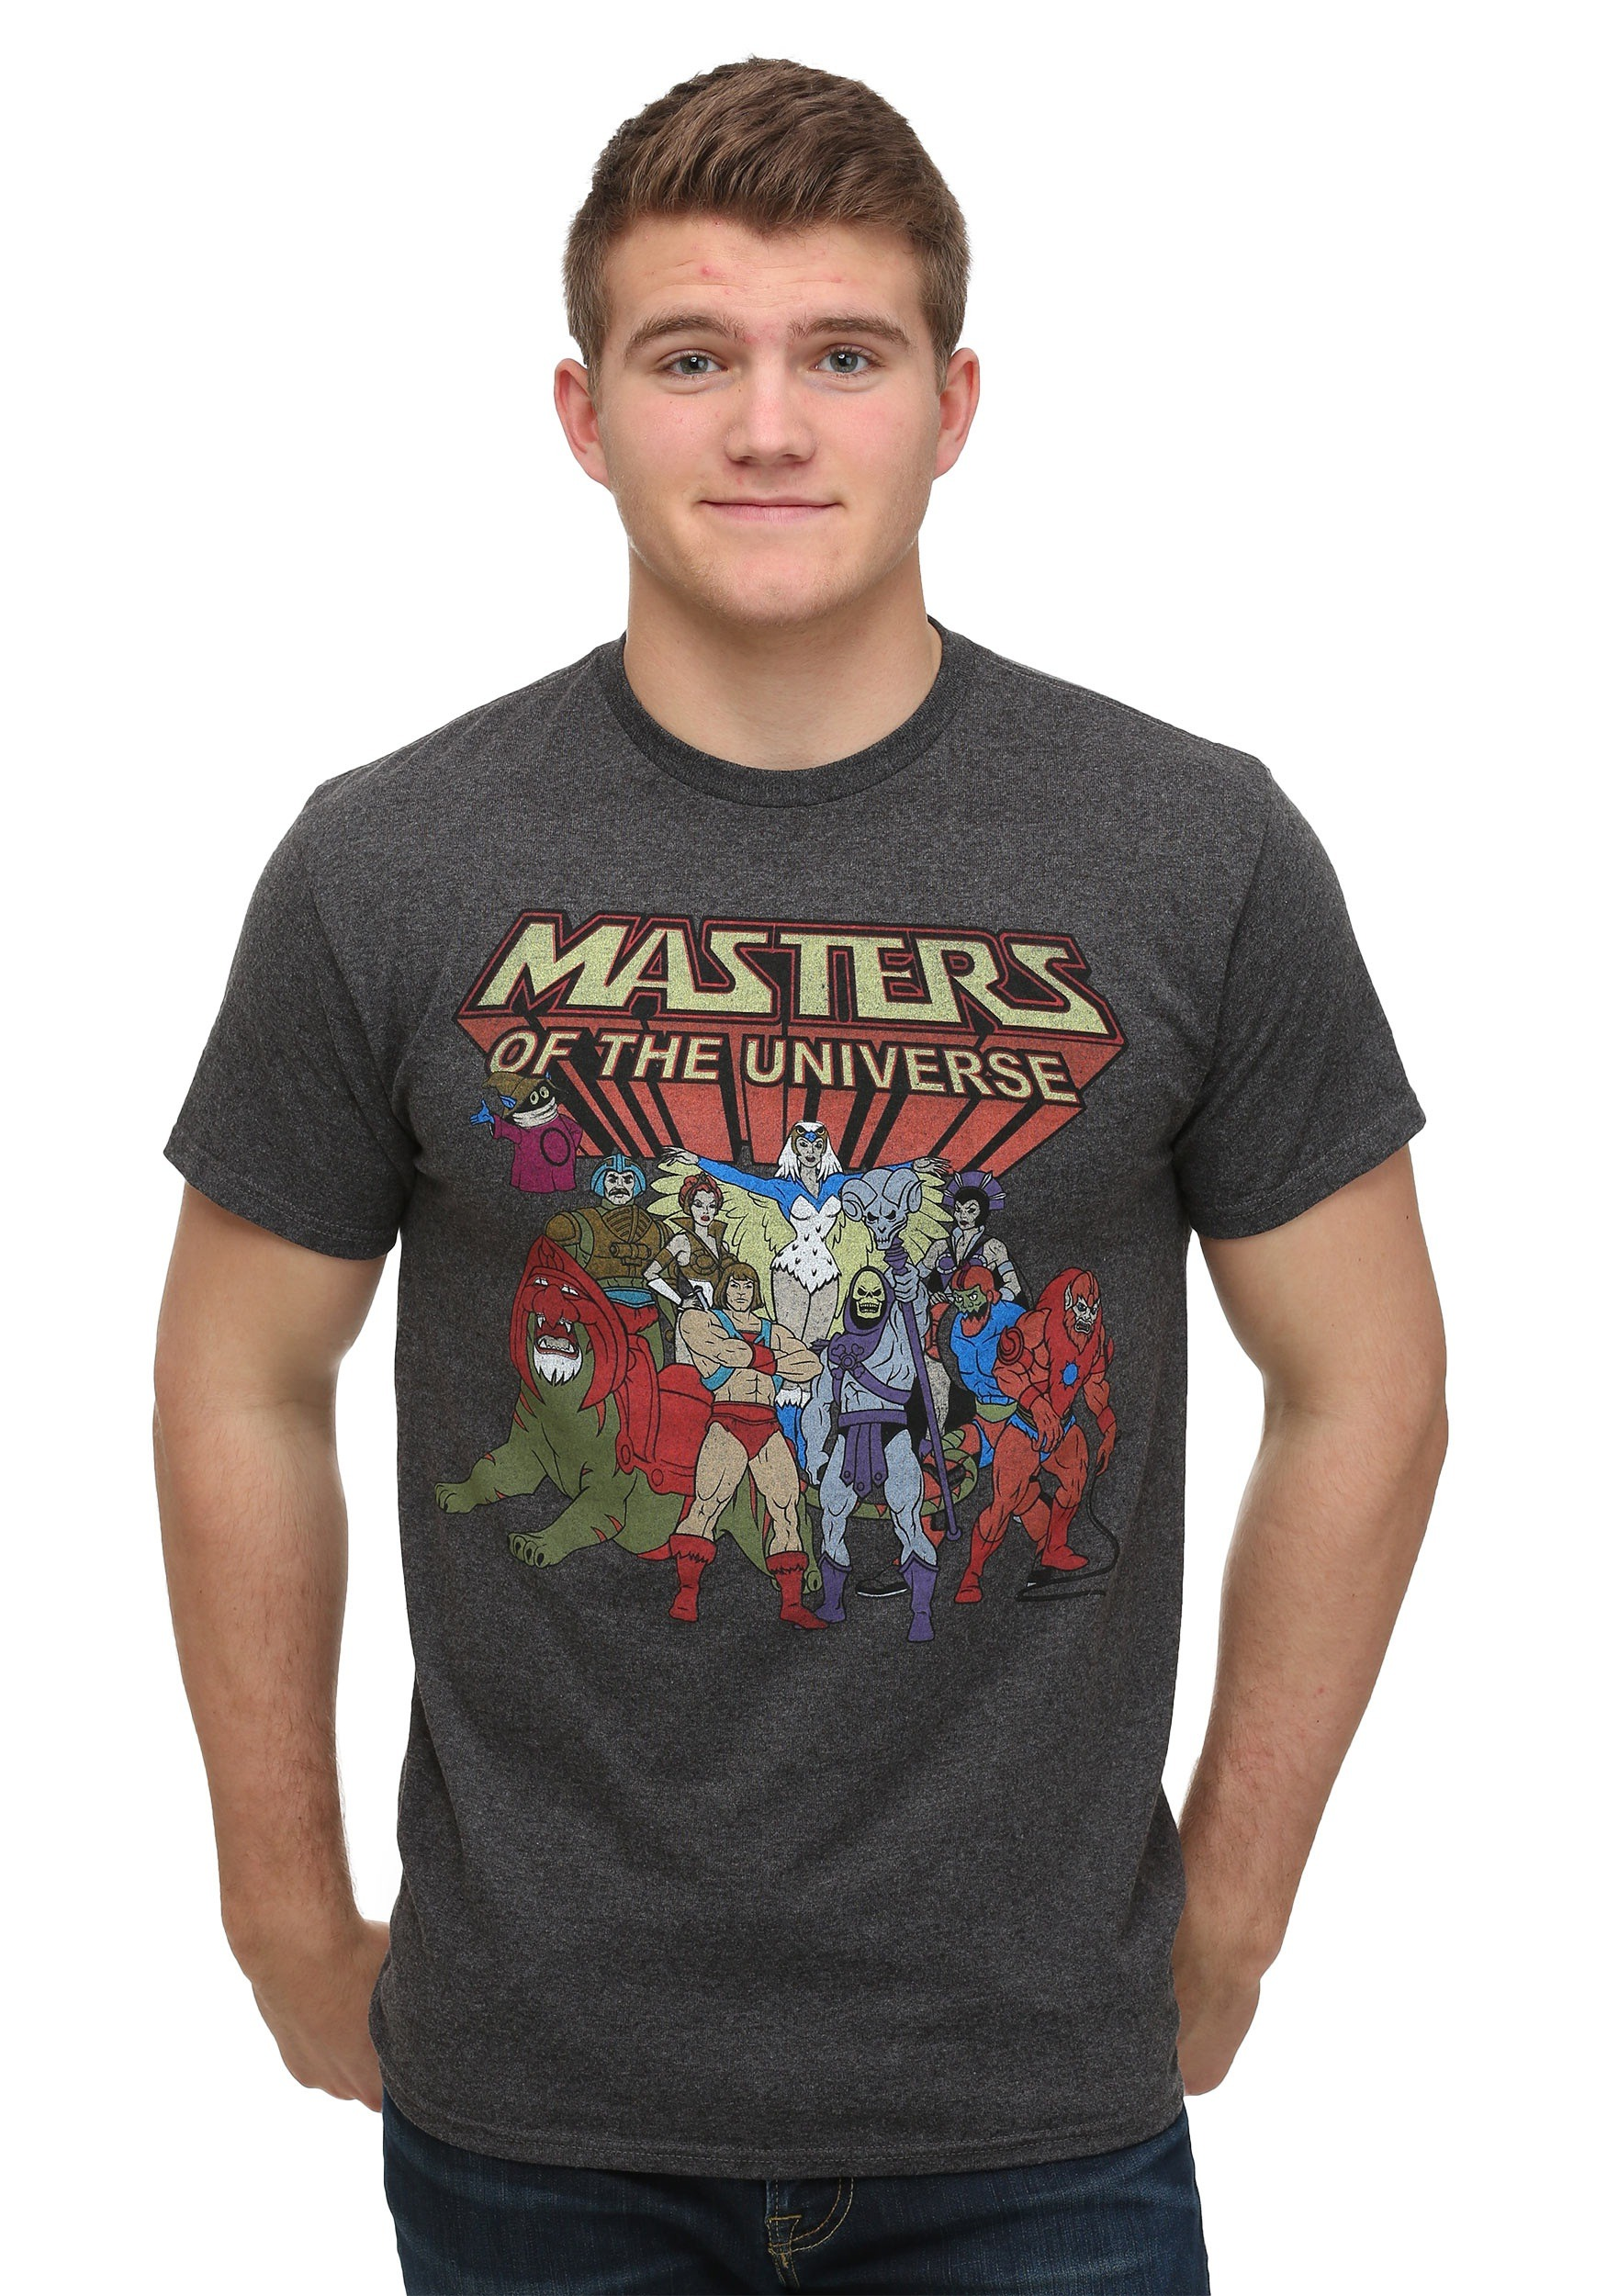 b824ff0445efee masters-of-the-universe-group-t-shirt.jpg